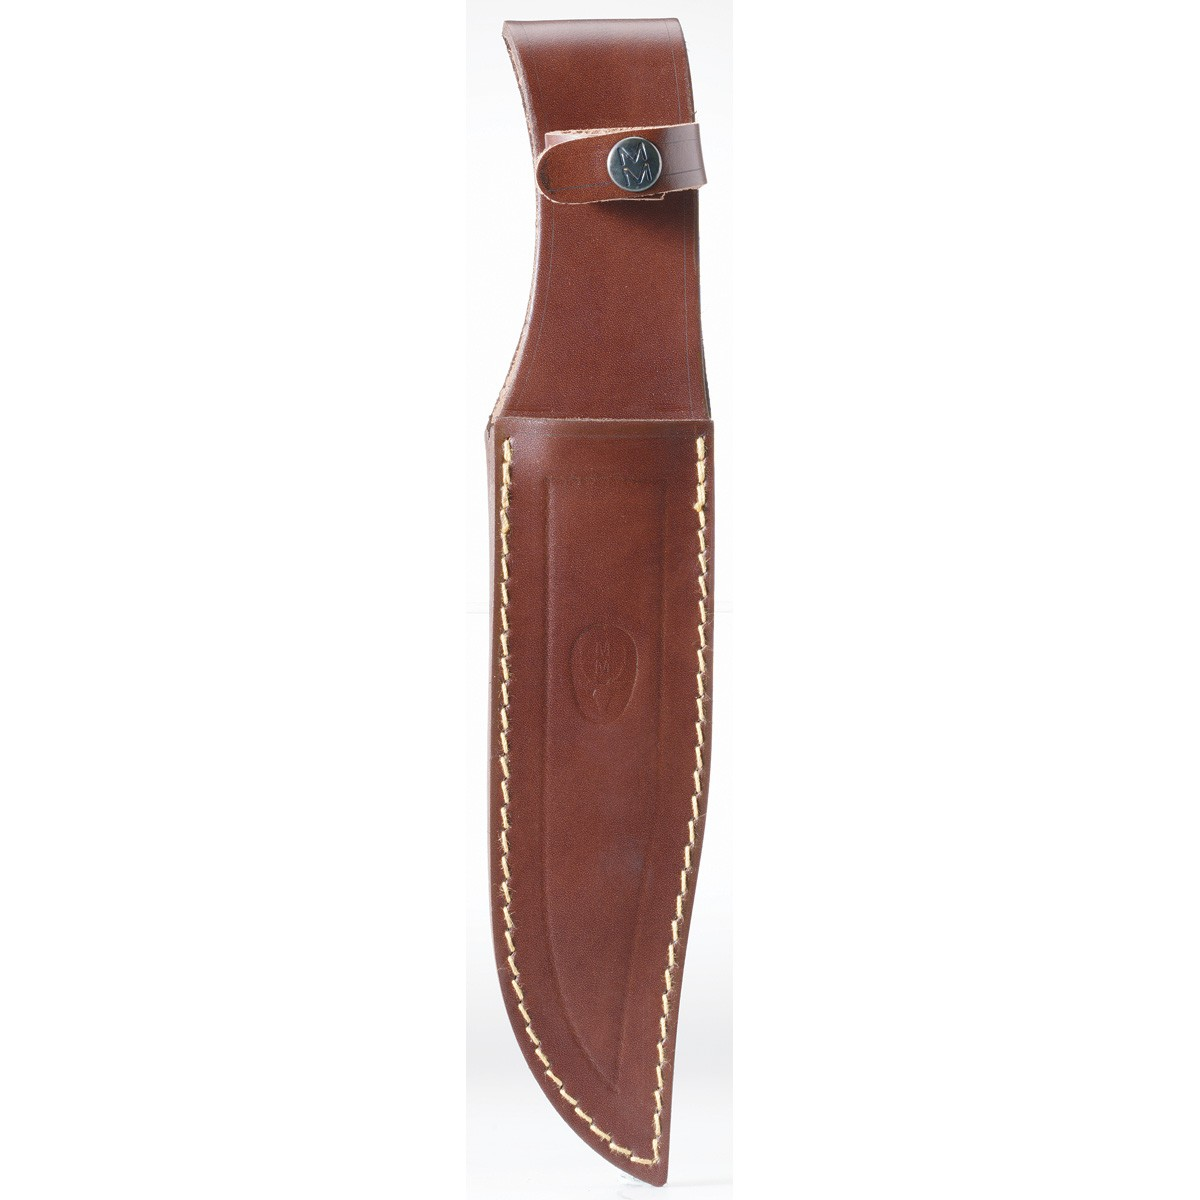 Sheath for Bowie 18